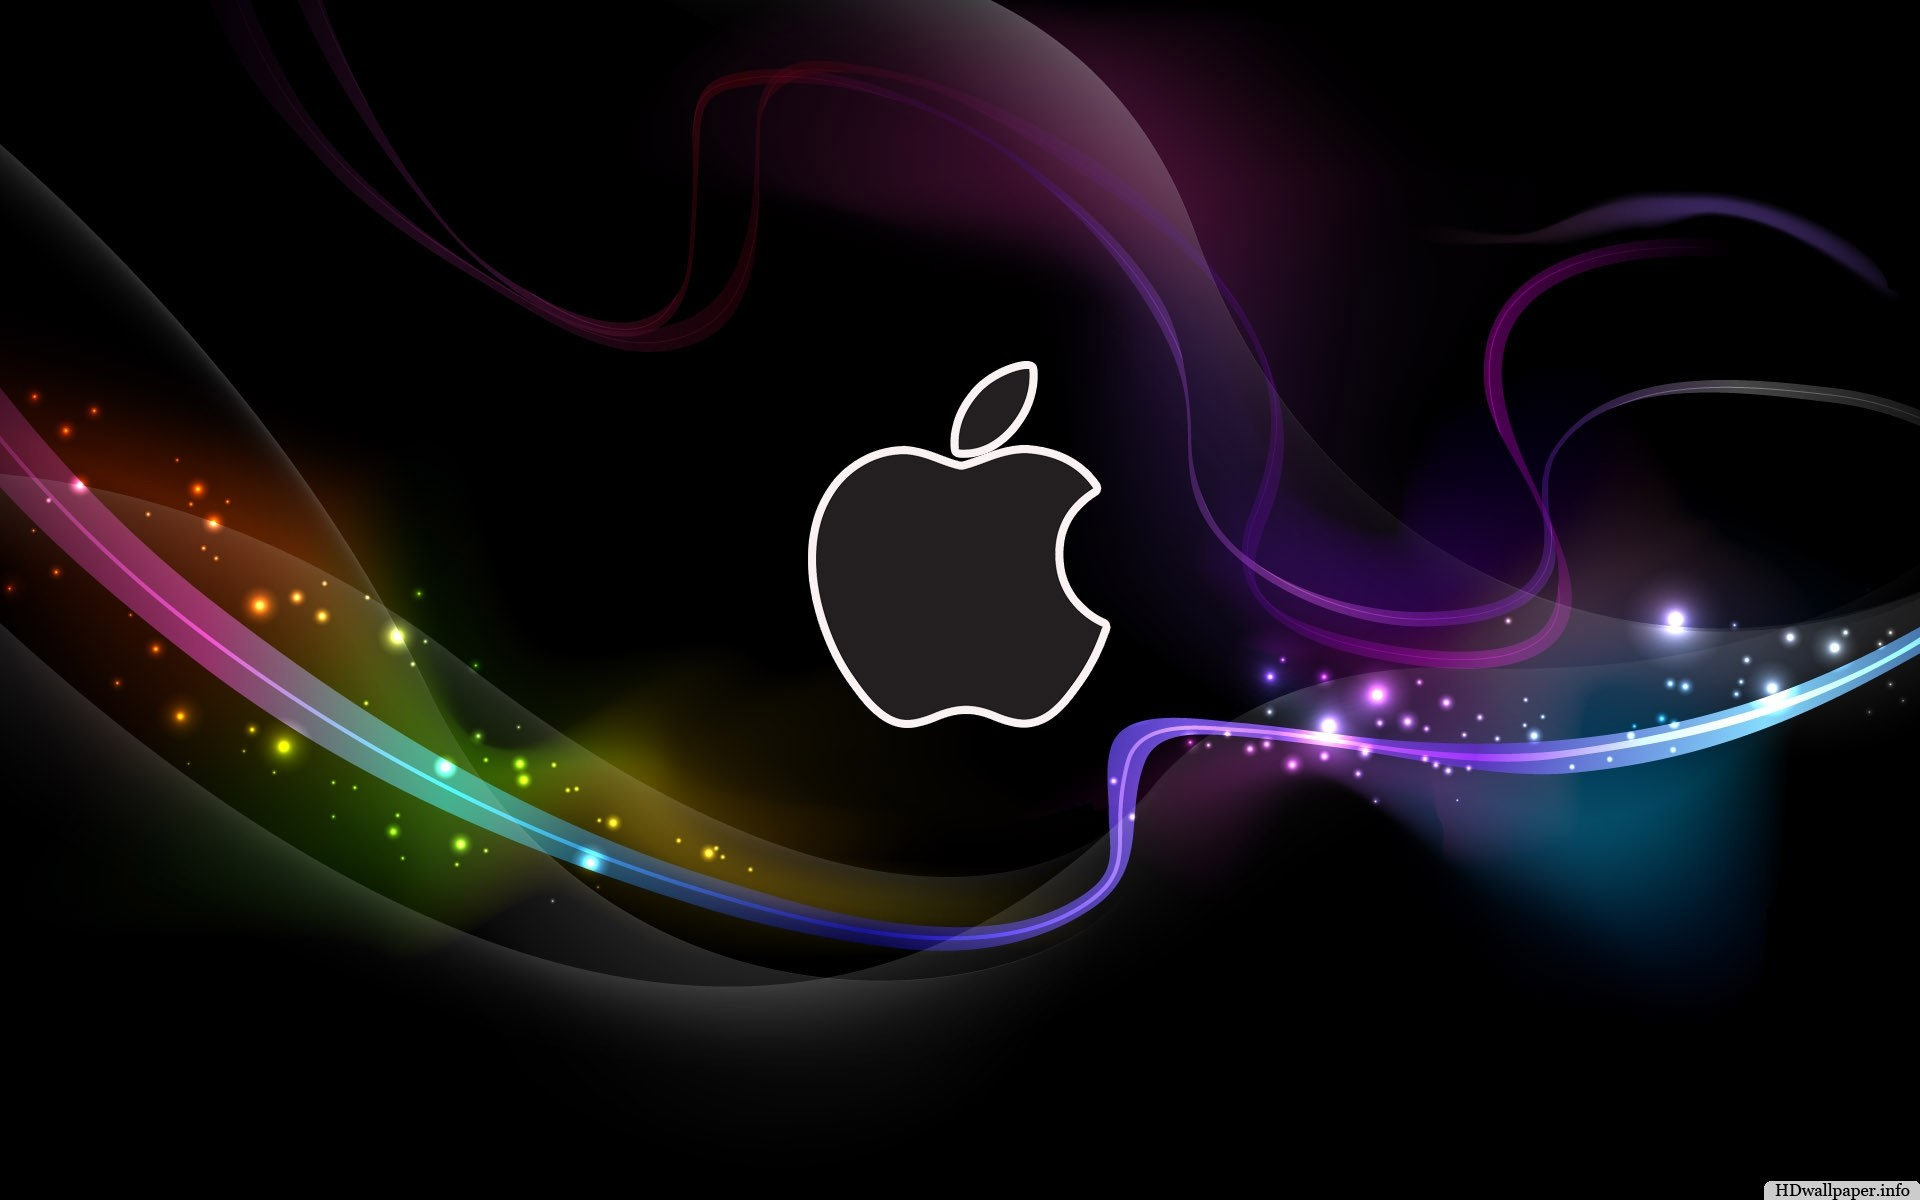 1920x1200 Apple Hd Wallpaper For Mac - http://hdwallpaper.info/apple-